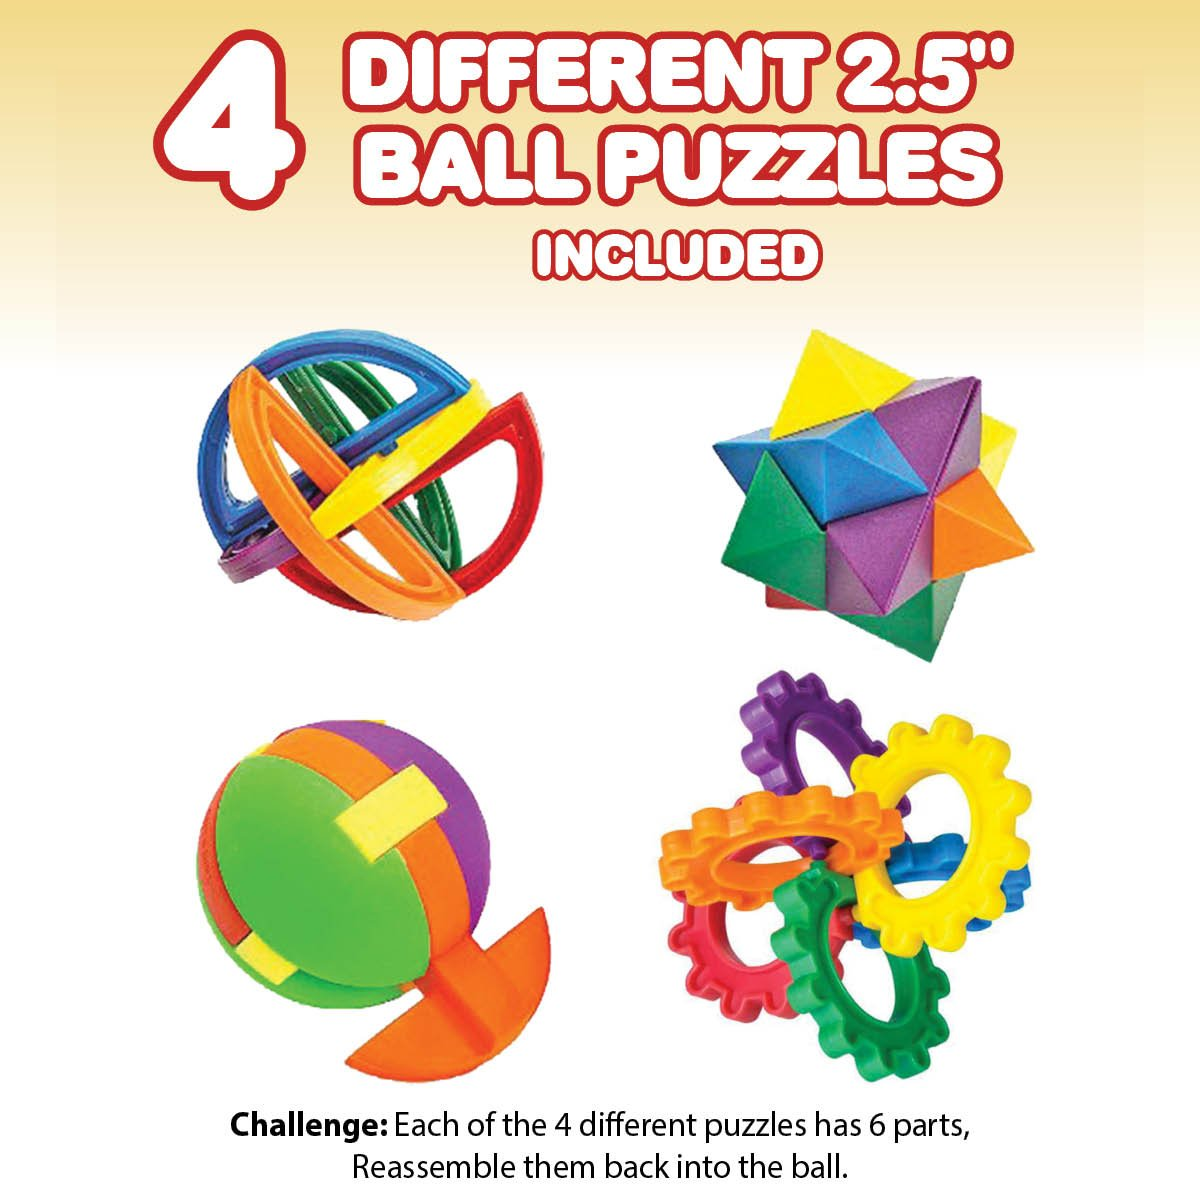 Amazon.com: IQ Challenge Set by GamieUSA - 7 Pcs Kids Educational Toys for  5 Year Olds - Highly Stimulating Brain Teasers - Challenging Mental  Exercises for ...